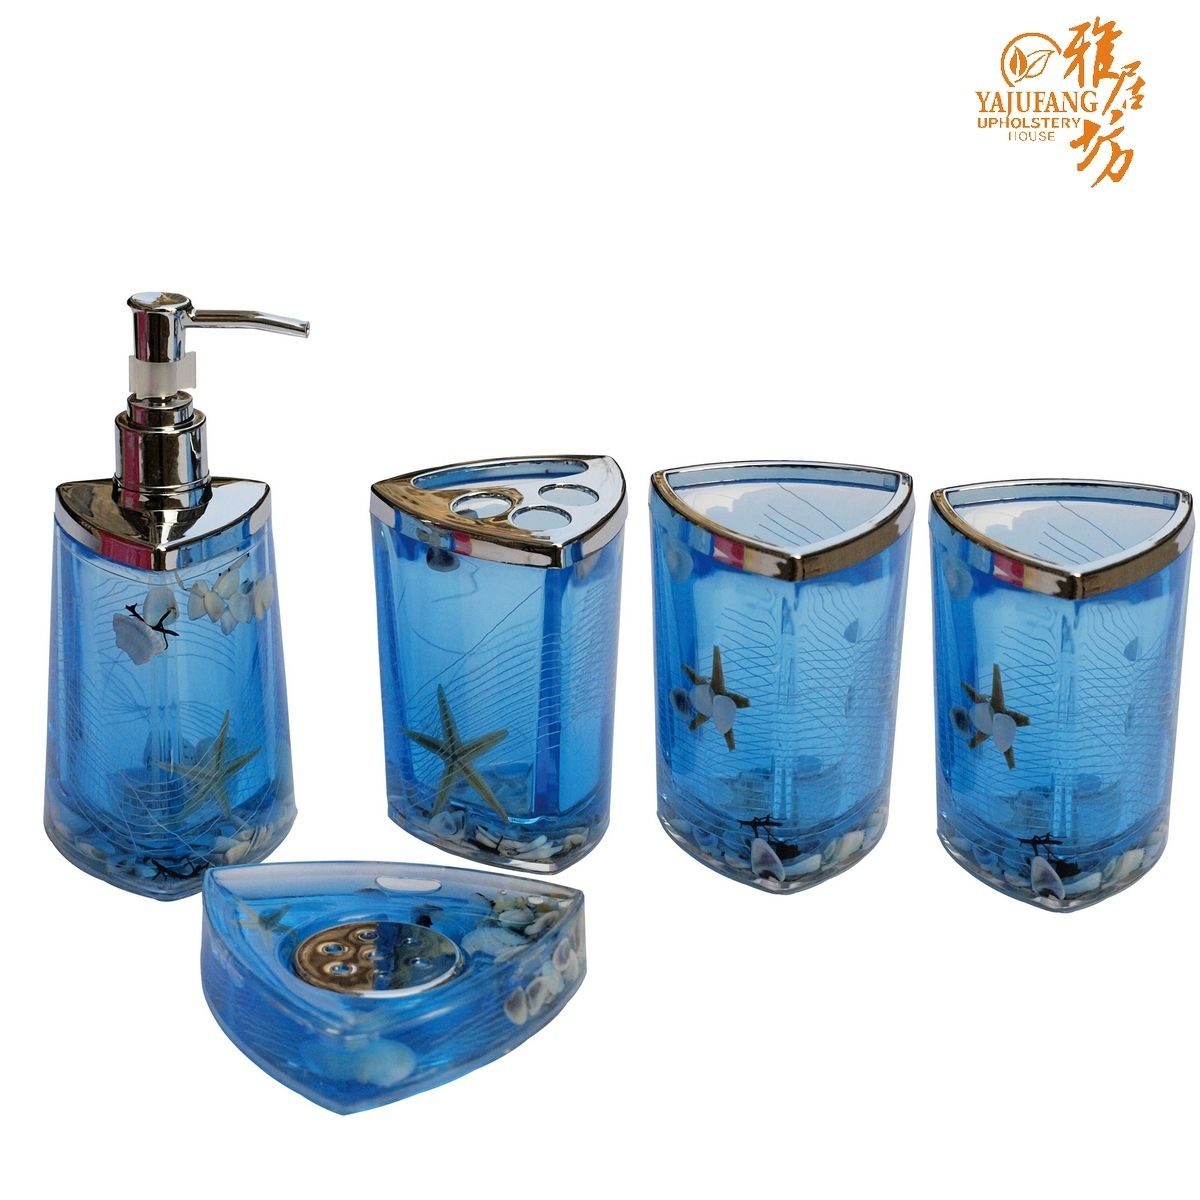 Shell Blue Ocean Bath Wash Set Bathroom